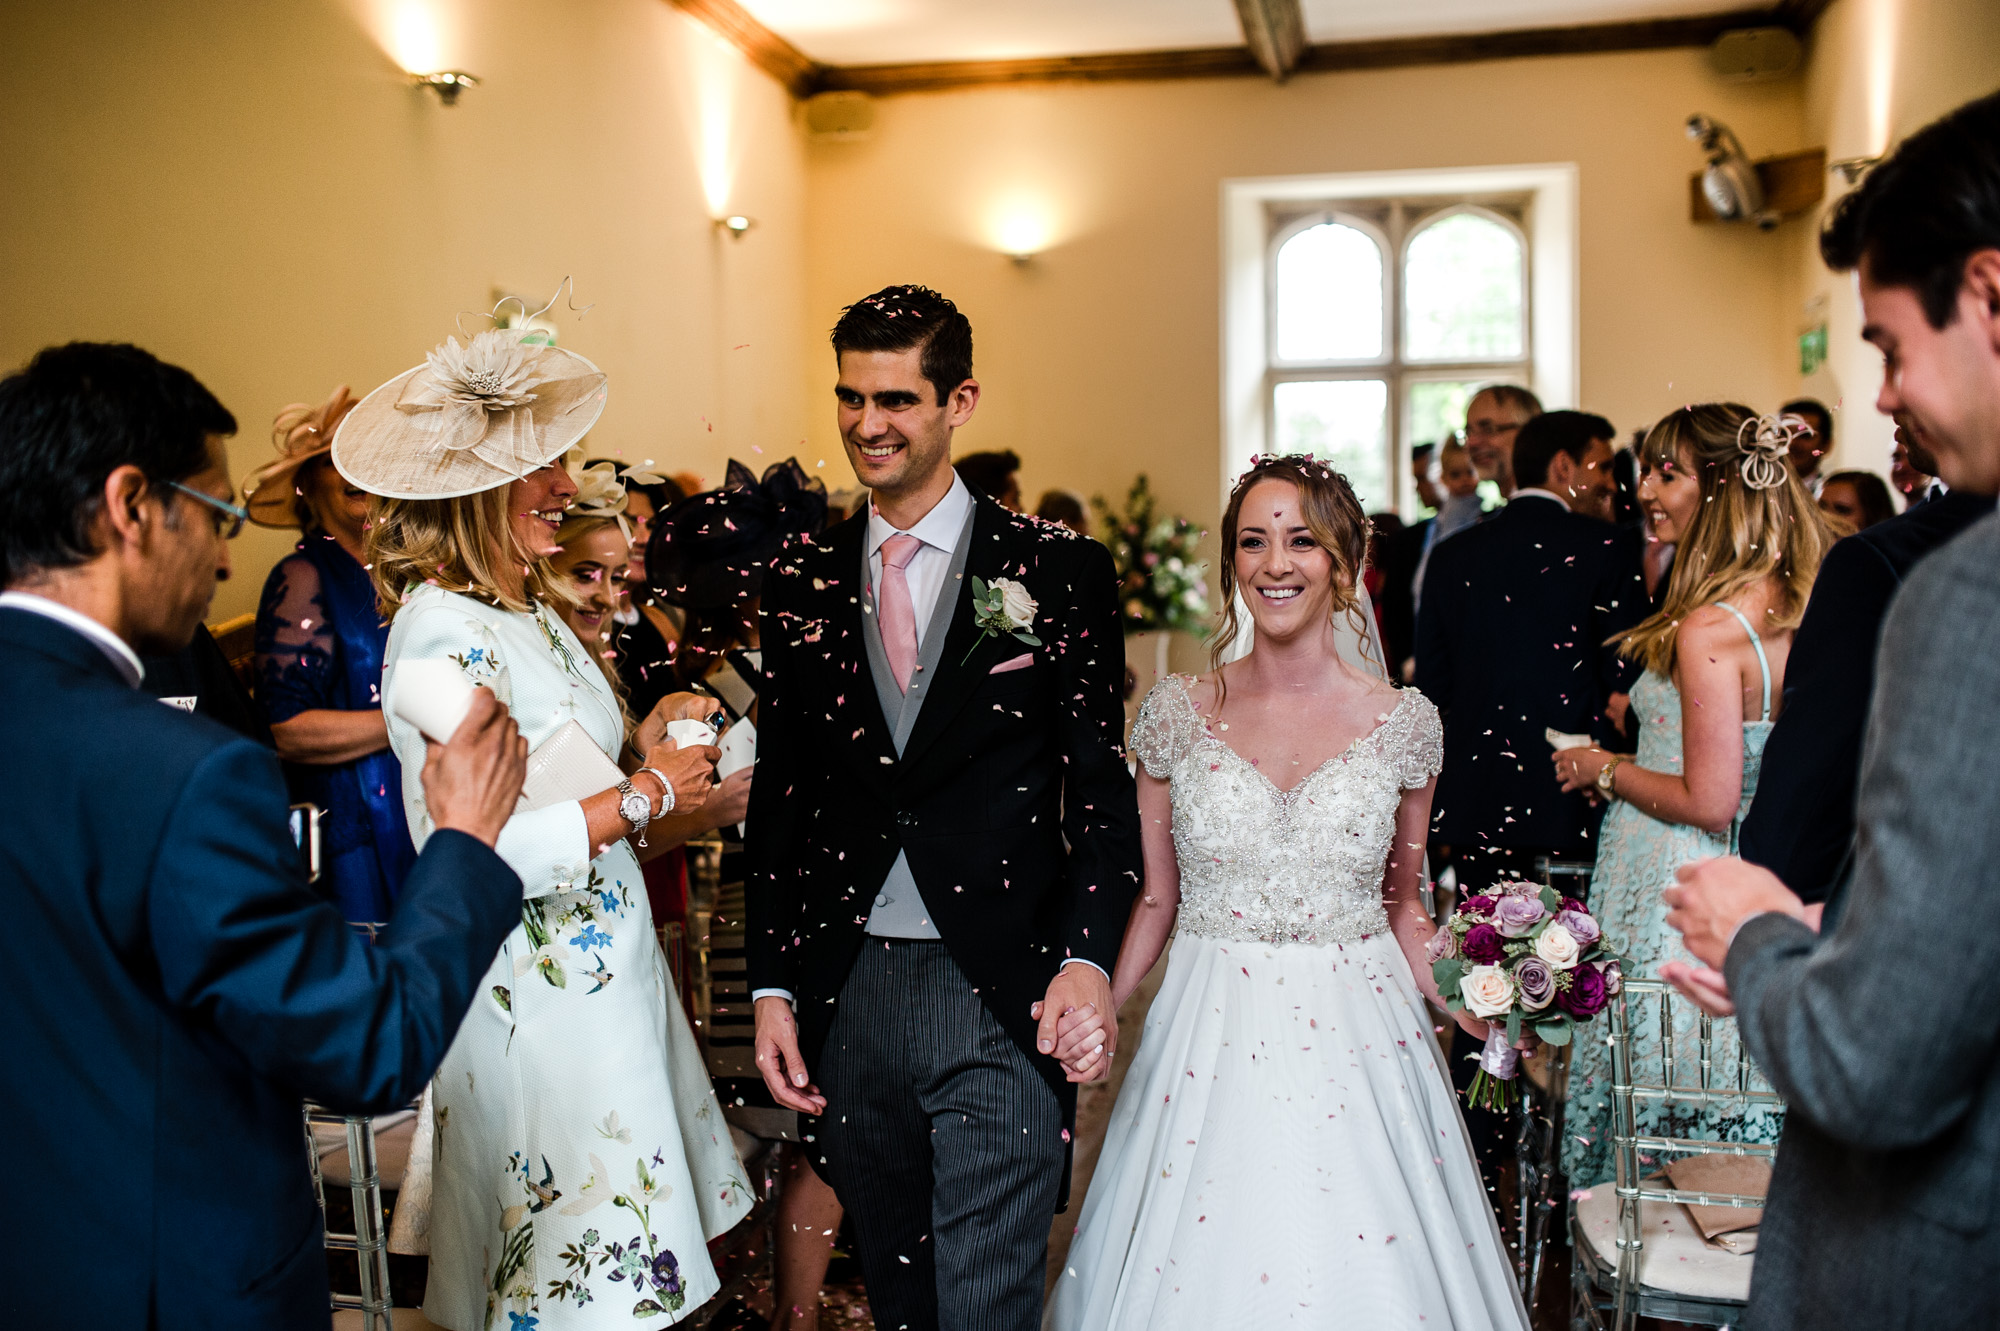 Notley Barn Wedding 26.10.18 14.jpg